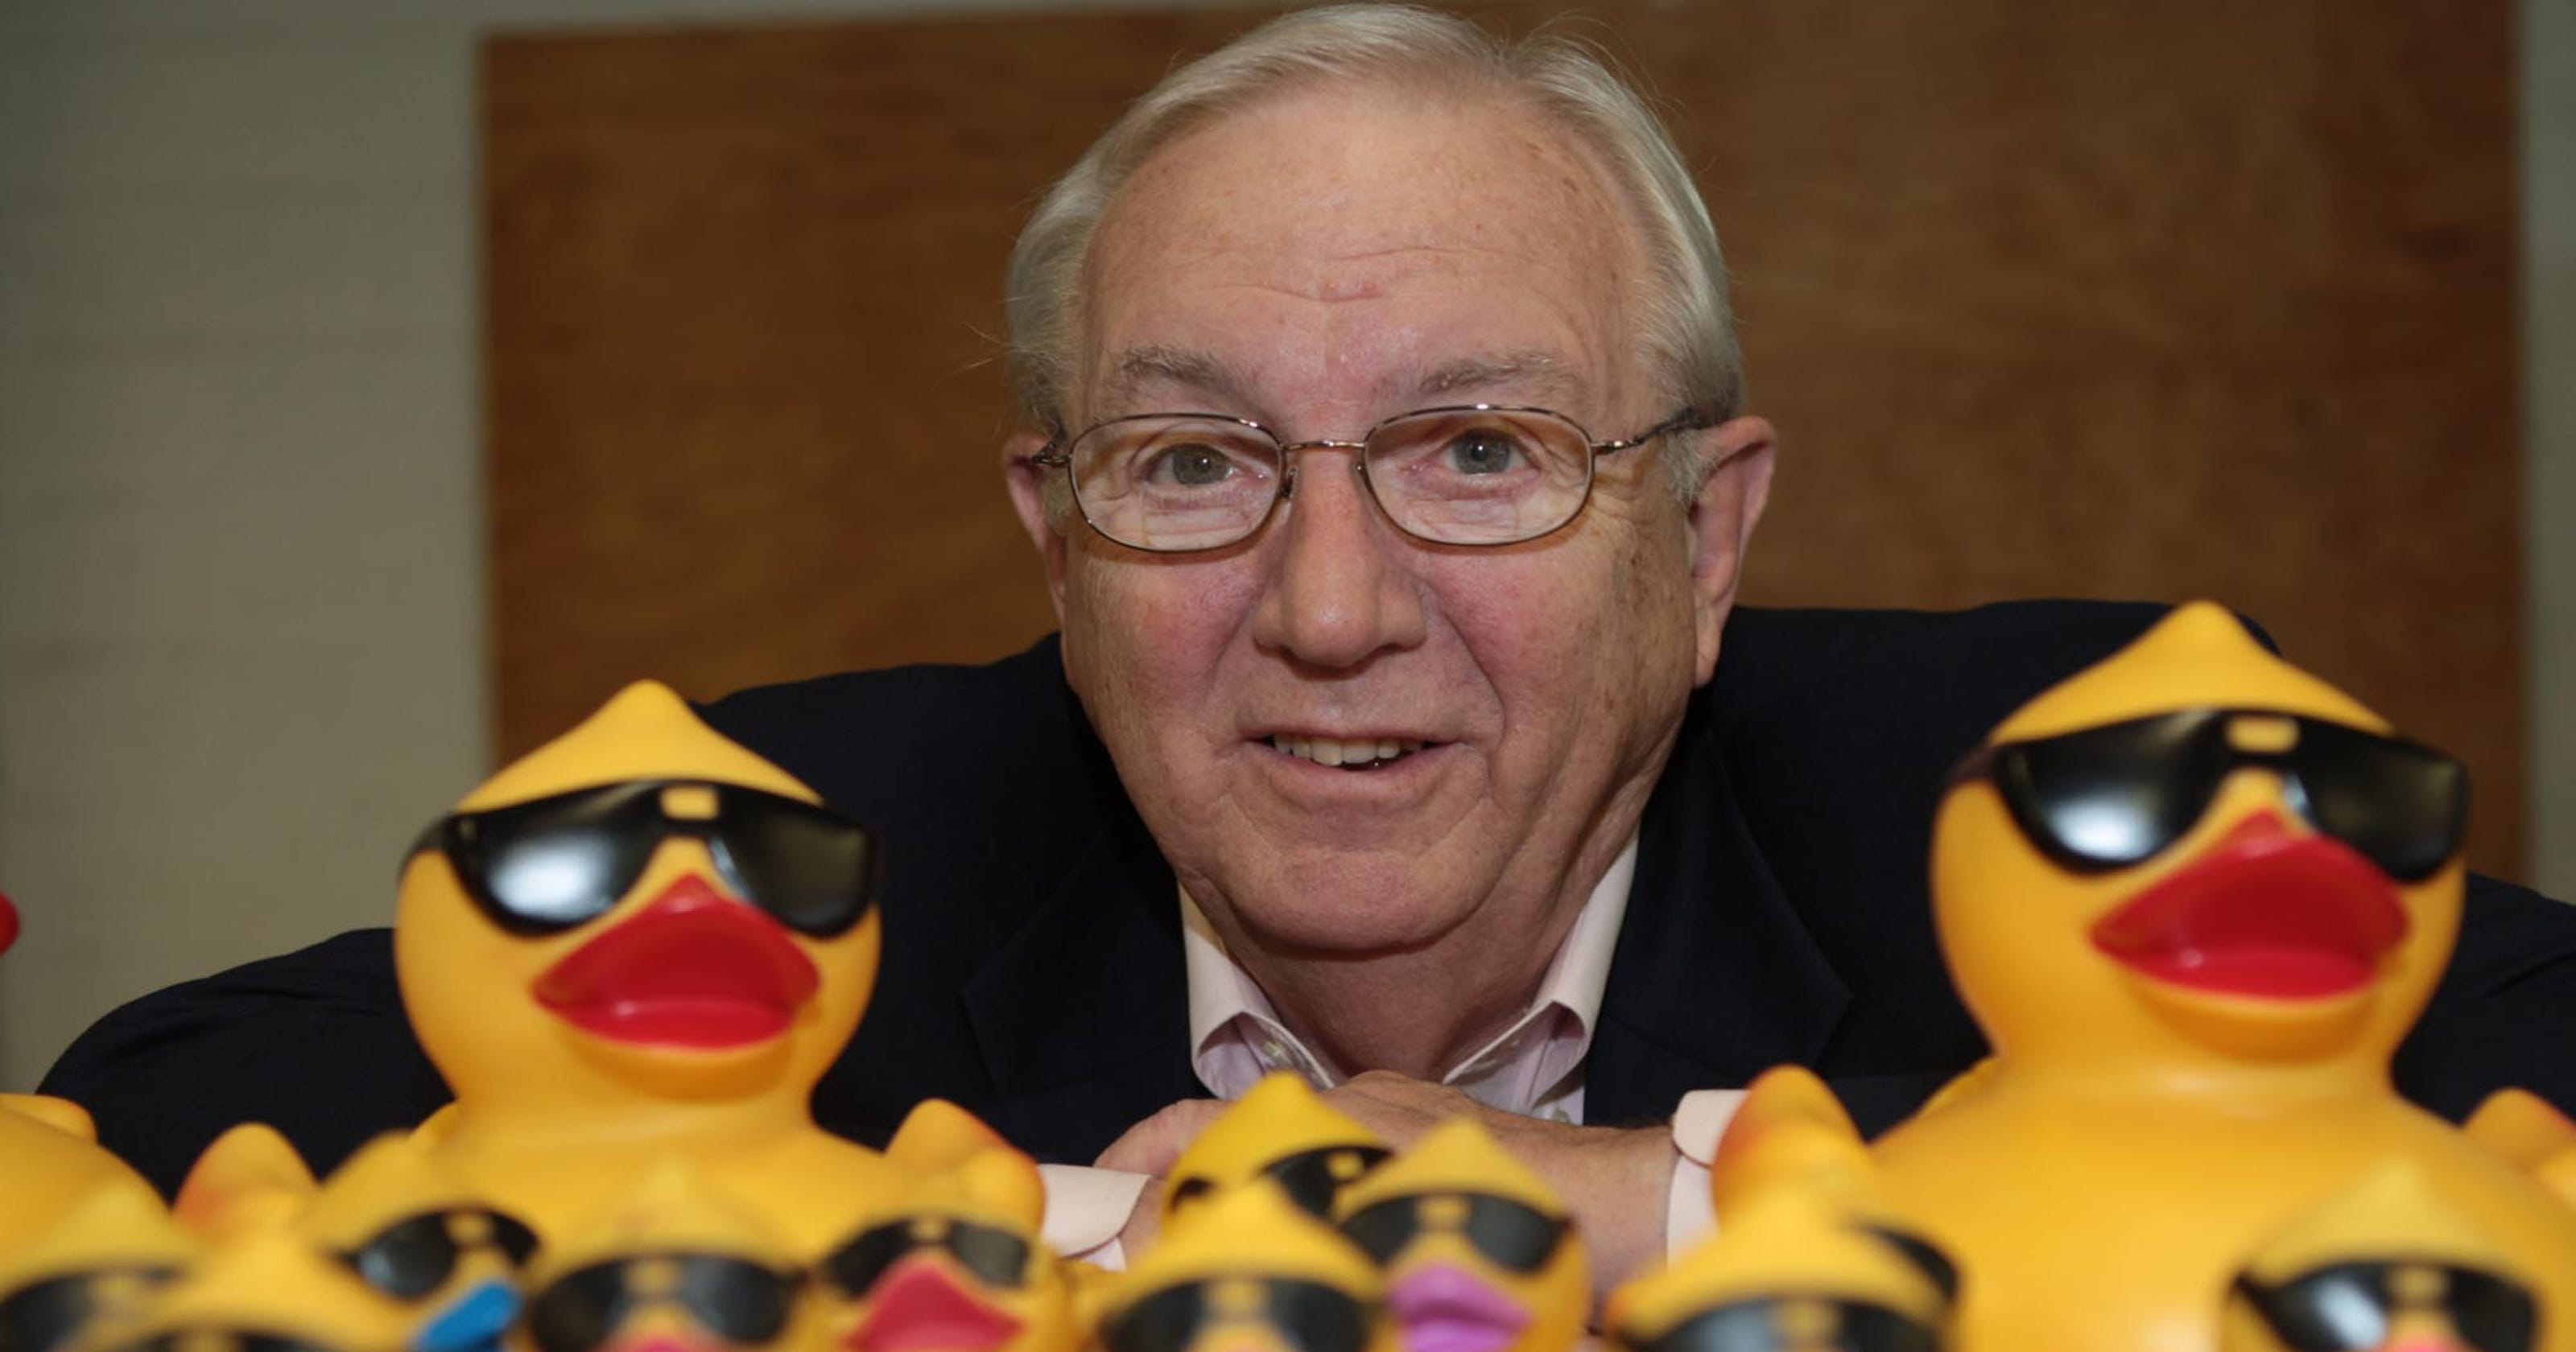 The man behind all those ducks